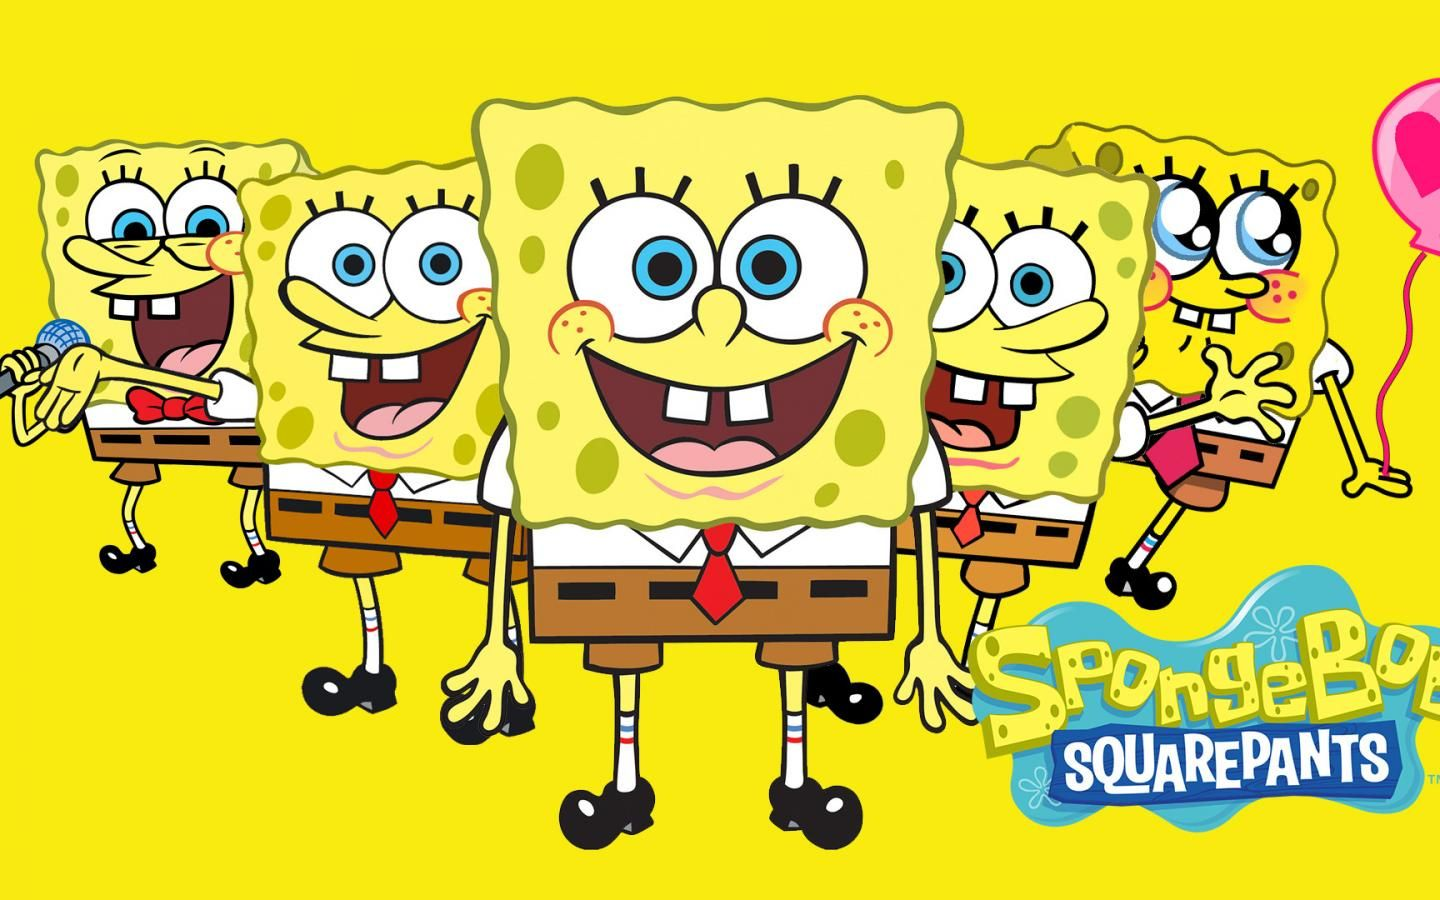 Spongebob Squarepants Desktop Wallpaper Spongebob Wallpaper Cartoon Wallpaper Spongebob